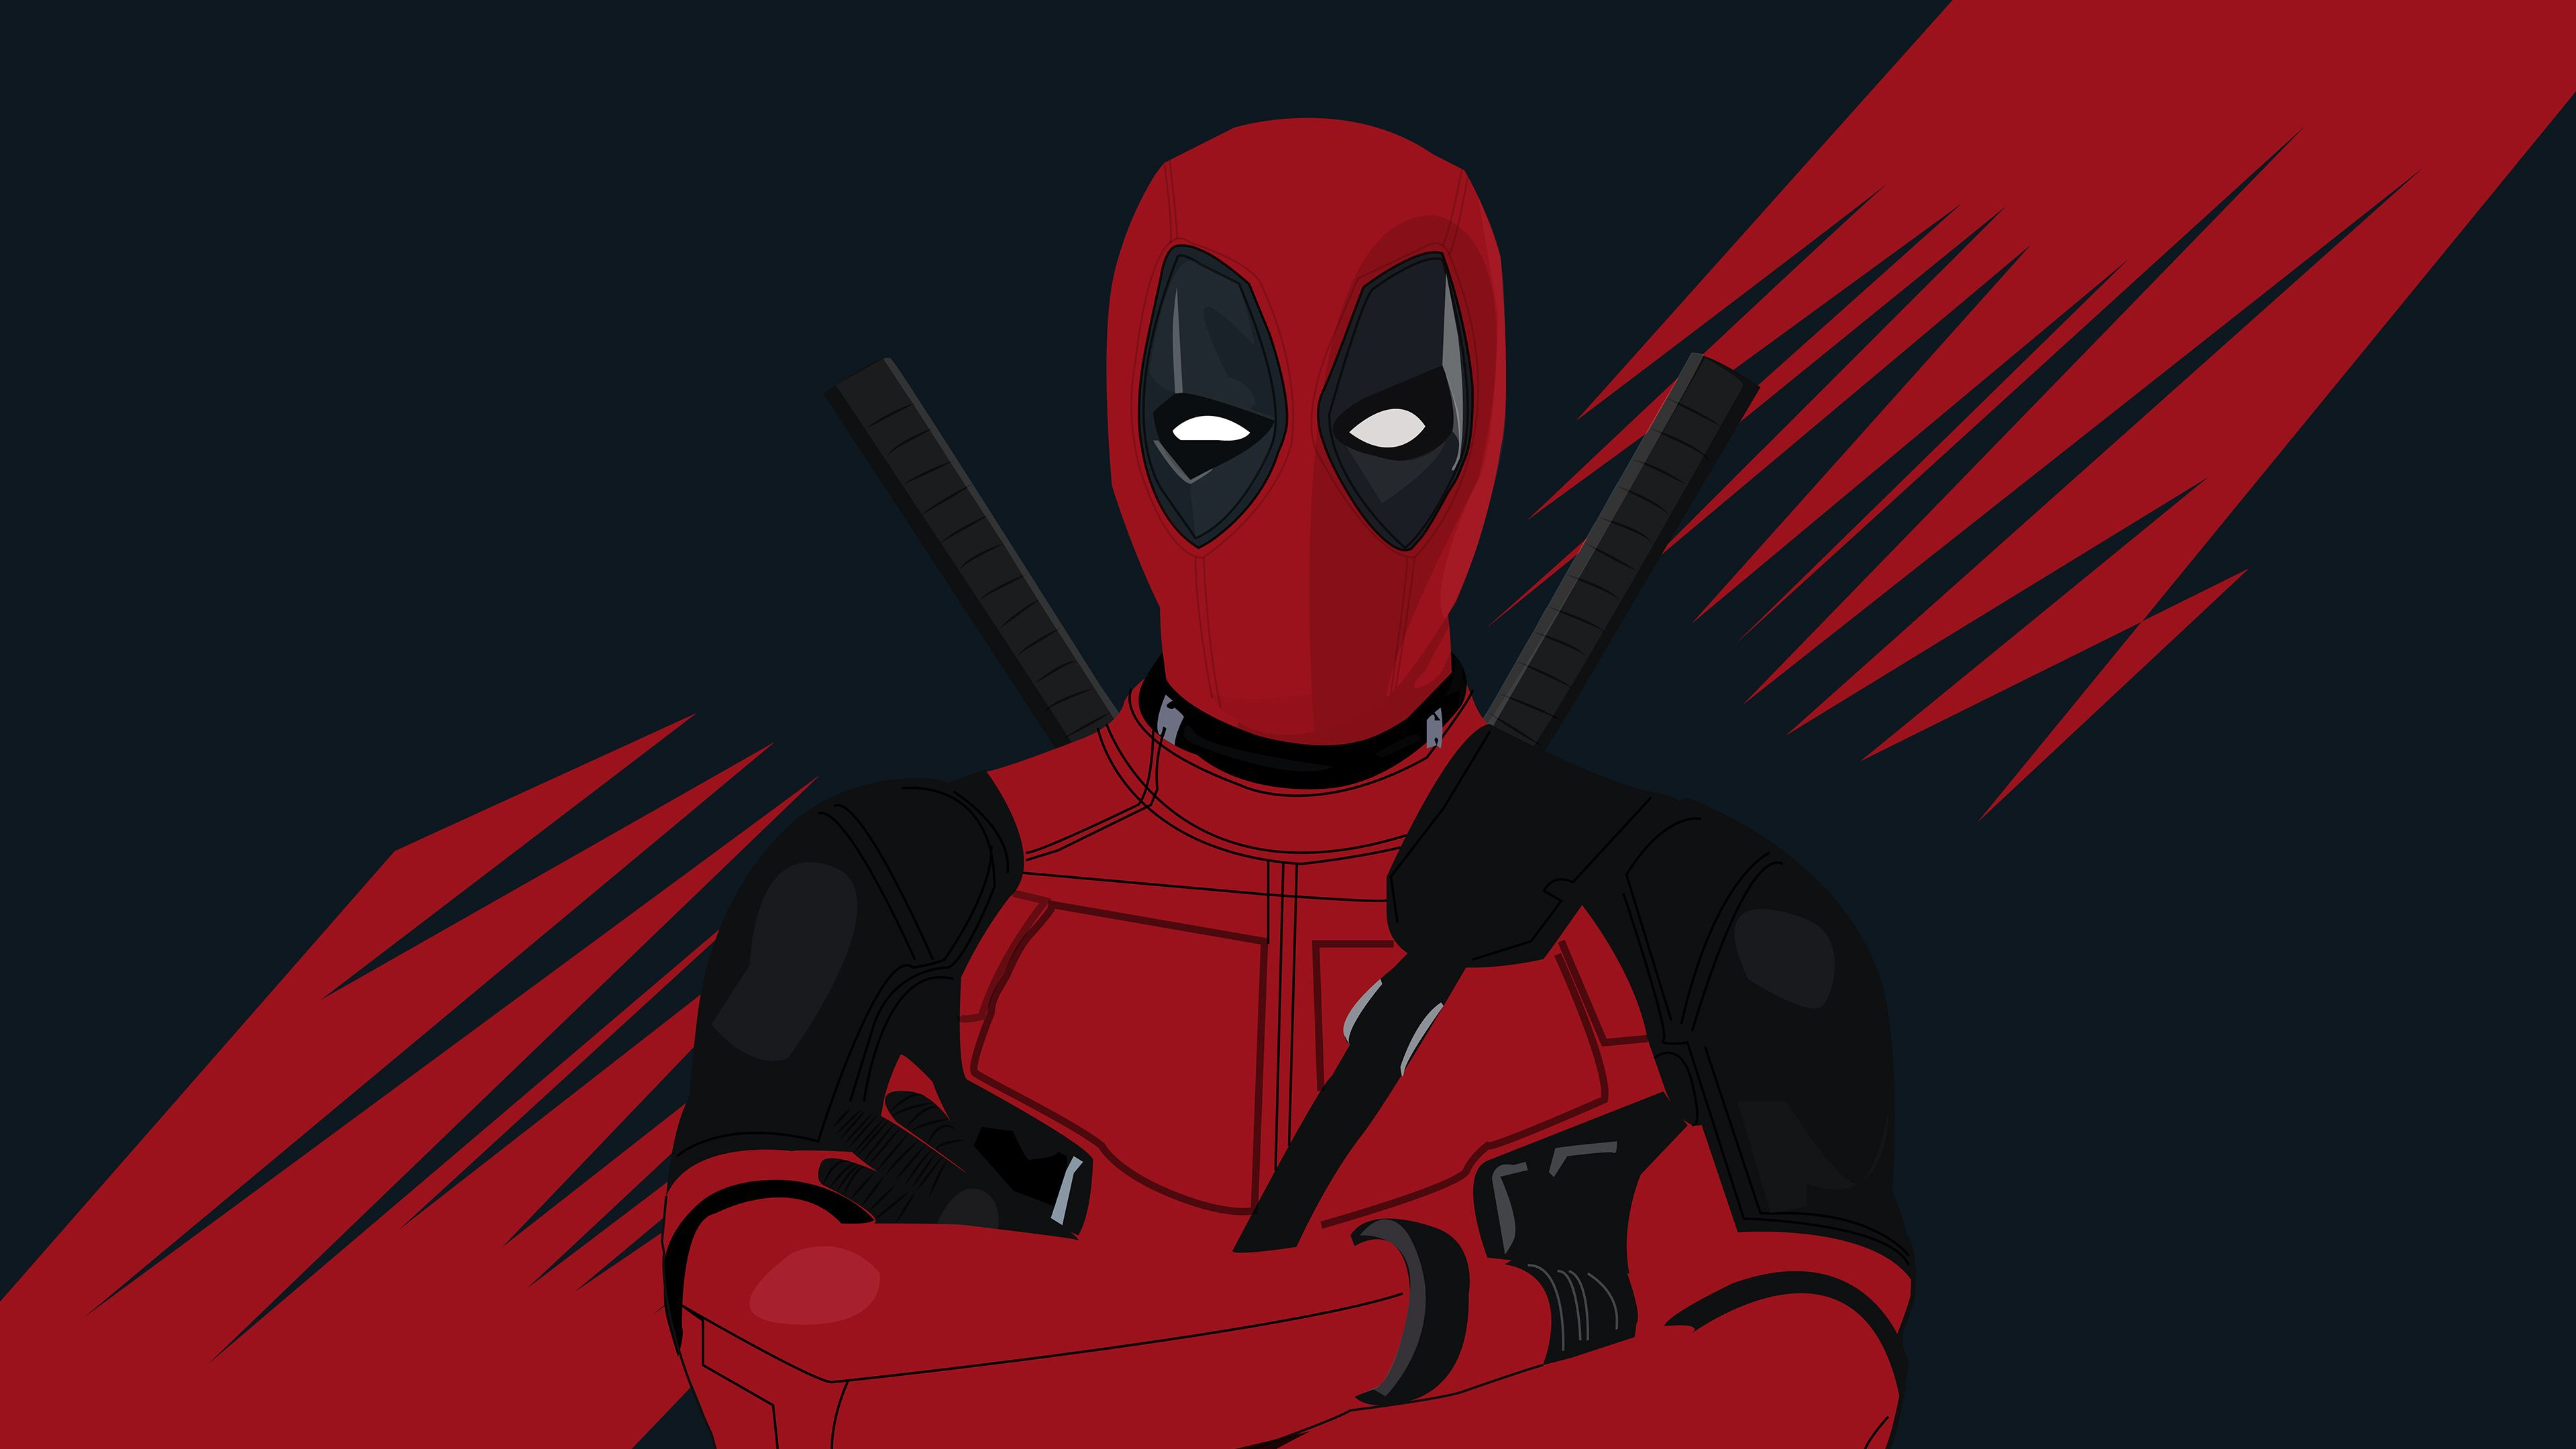 4k Deadpool Minimal 2019 superheroes wallpapers hd wallpapers